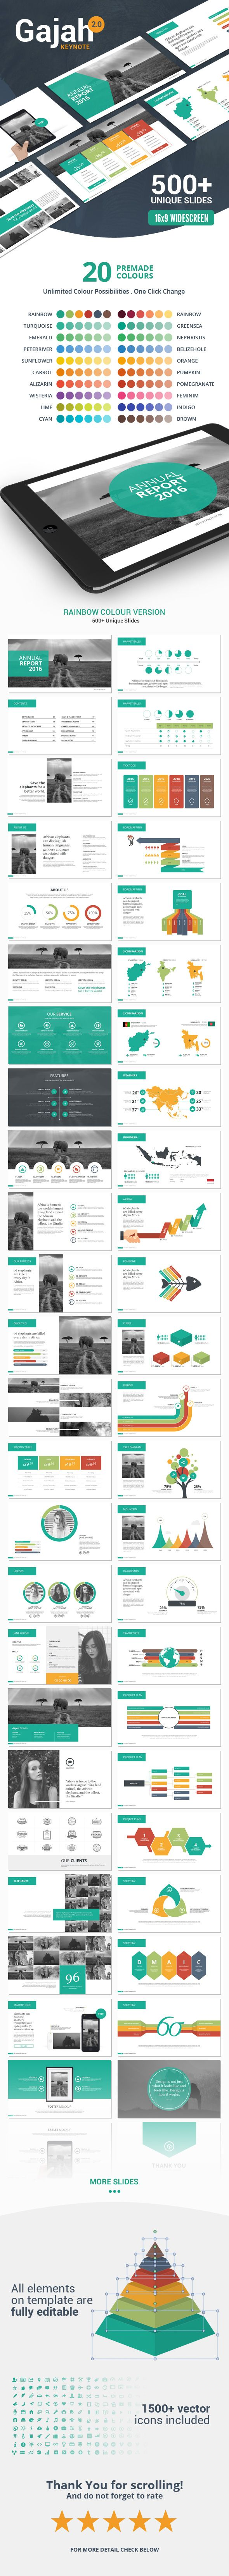 Gajah is a powerful and modern keynote template contains 500 total unique slides with custom and clean design for multipurpose presentation business or personal use, such a creative industry, technology, finance, etc. All elements are editable from a shape to colour no need another software to edit it, all presentations include an animated slide and transitions.